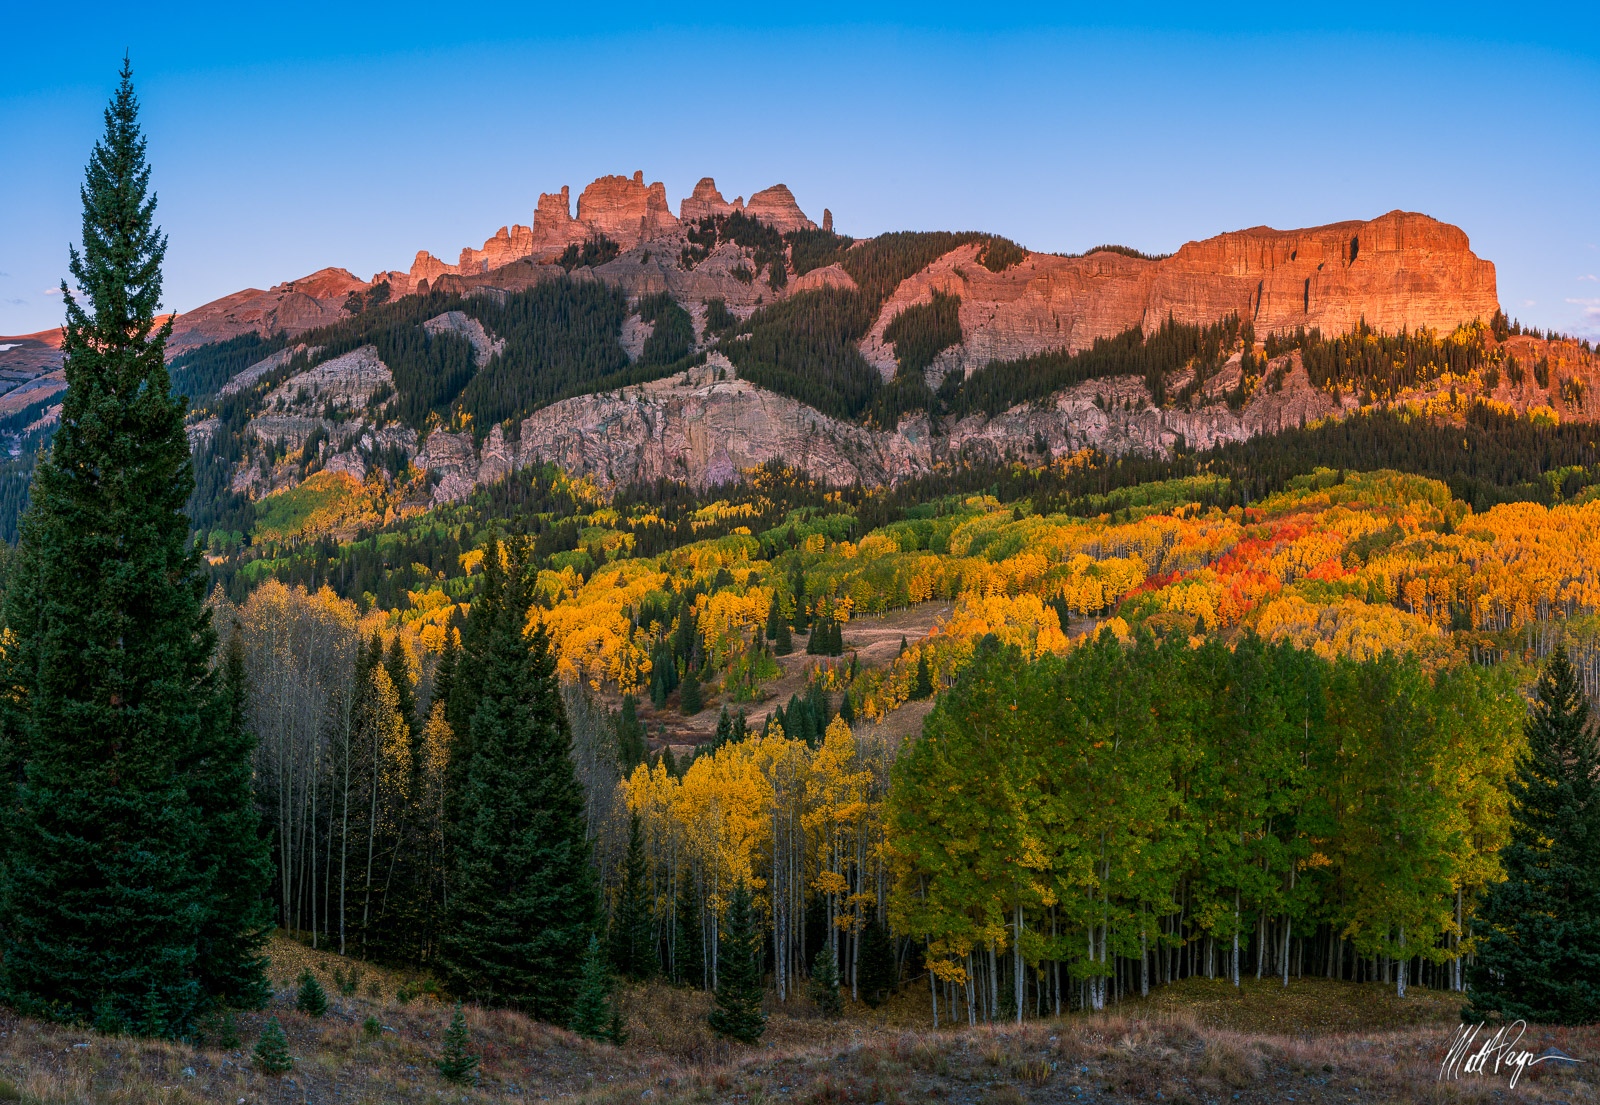 The Castles, Elk Mountains Wilderness, backpacking, aspen foliage, fall color, vibrant, sunrise, photo